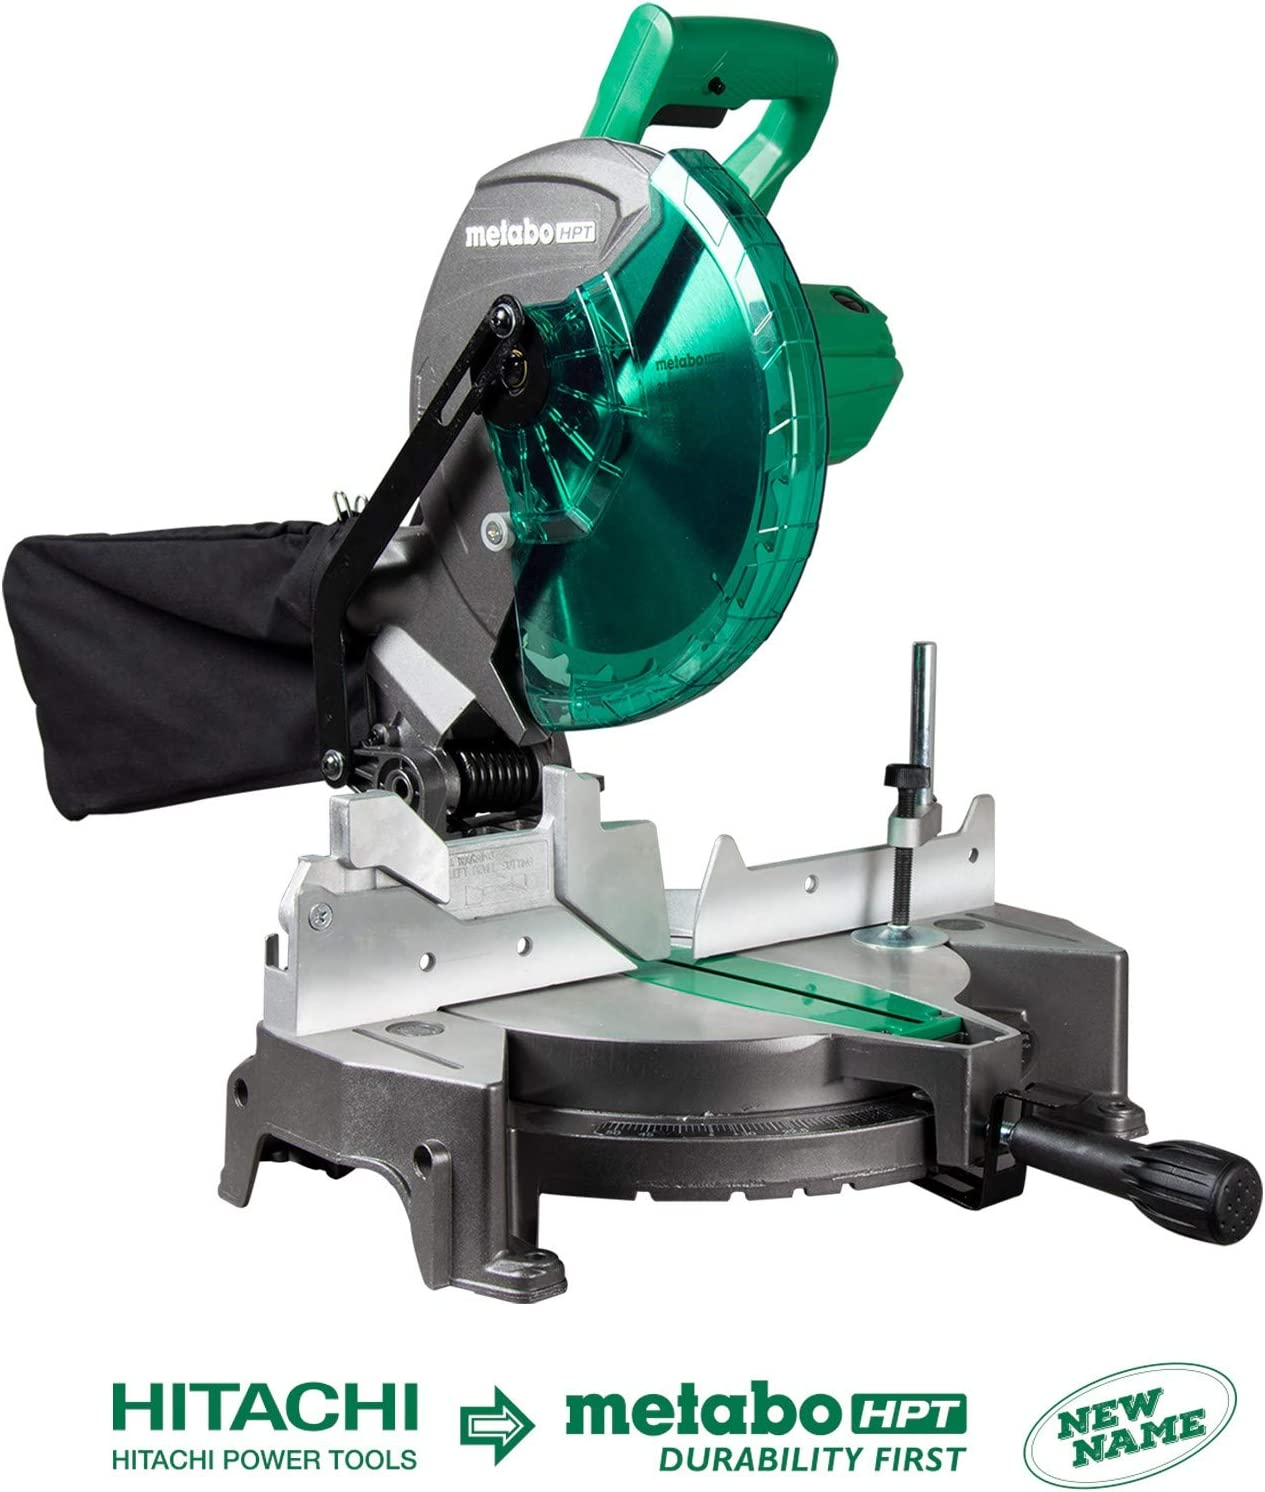 Metabo HPT C10FCGS 10 Compound Miter Saw, 15-Amp Motor, Single Bevel, 0-52 Miter Angle Range, 0-45 Bevel Range, Large Table, 10 24T TCT Saw Blade